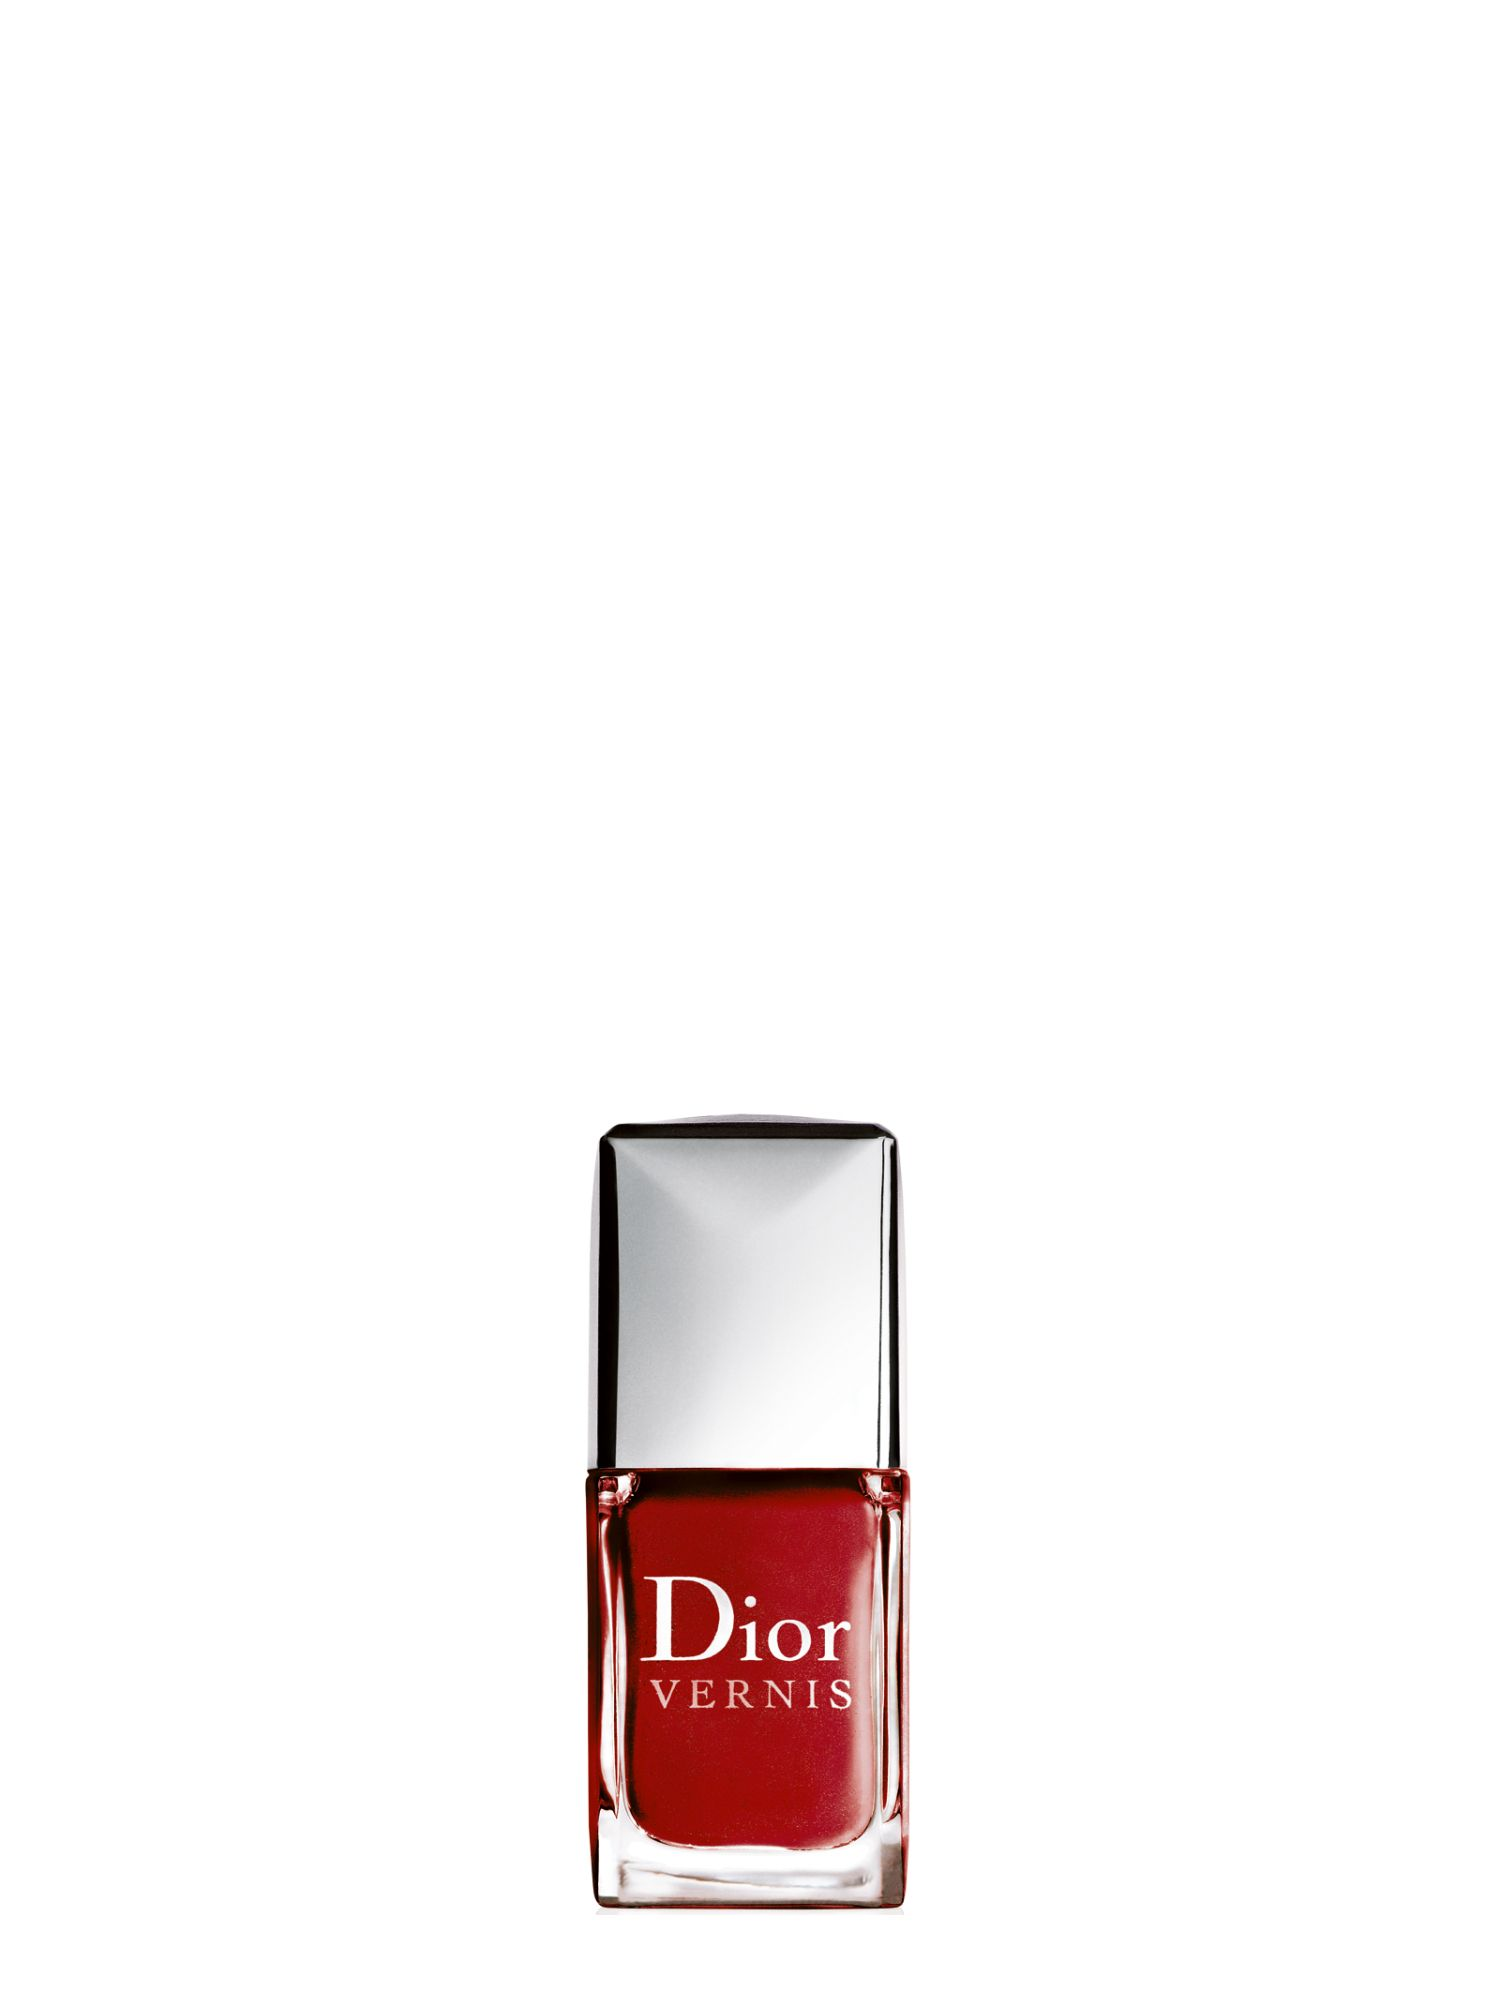 Dior Vernis Long-Wearing Nail Lacquer SUGAR CANE product image